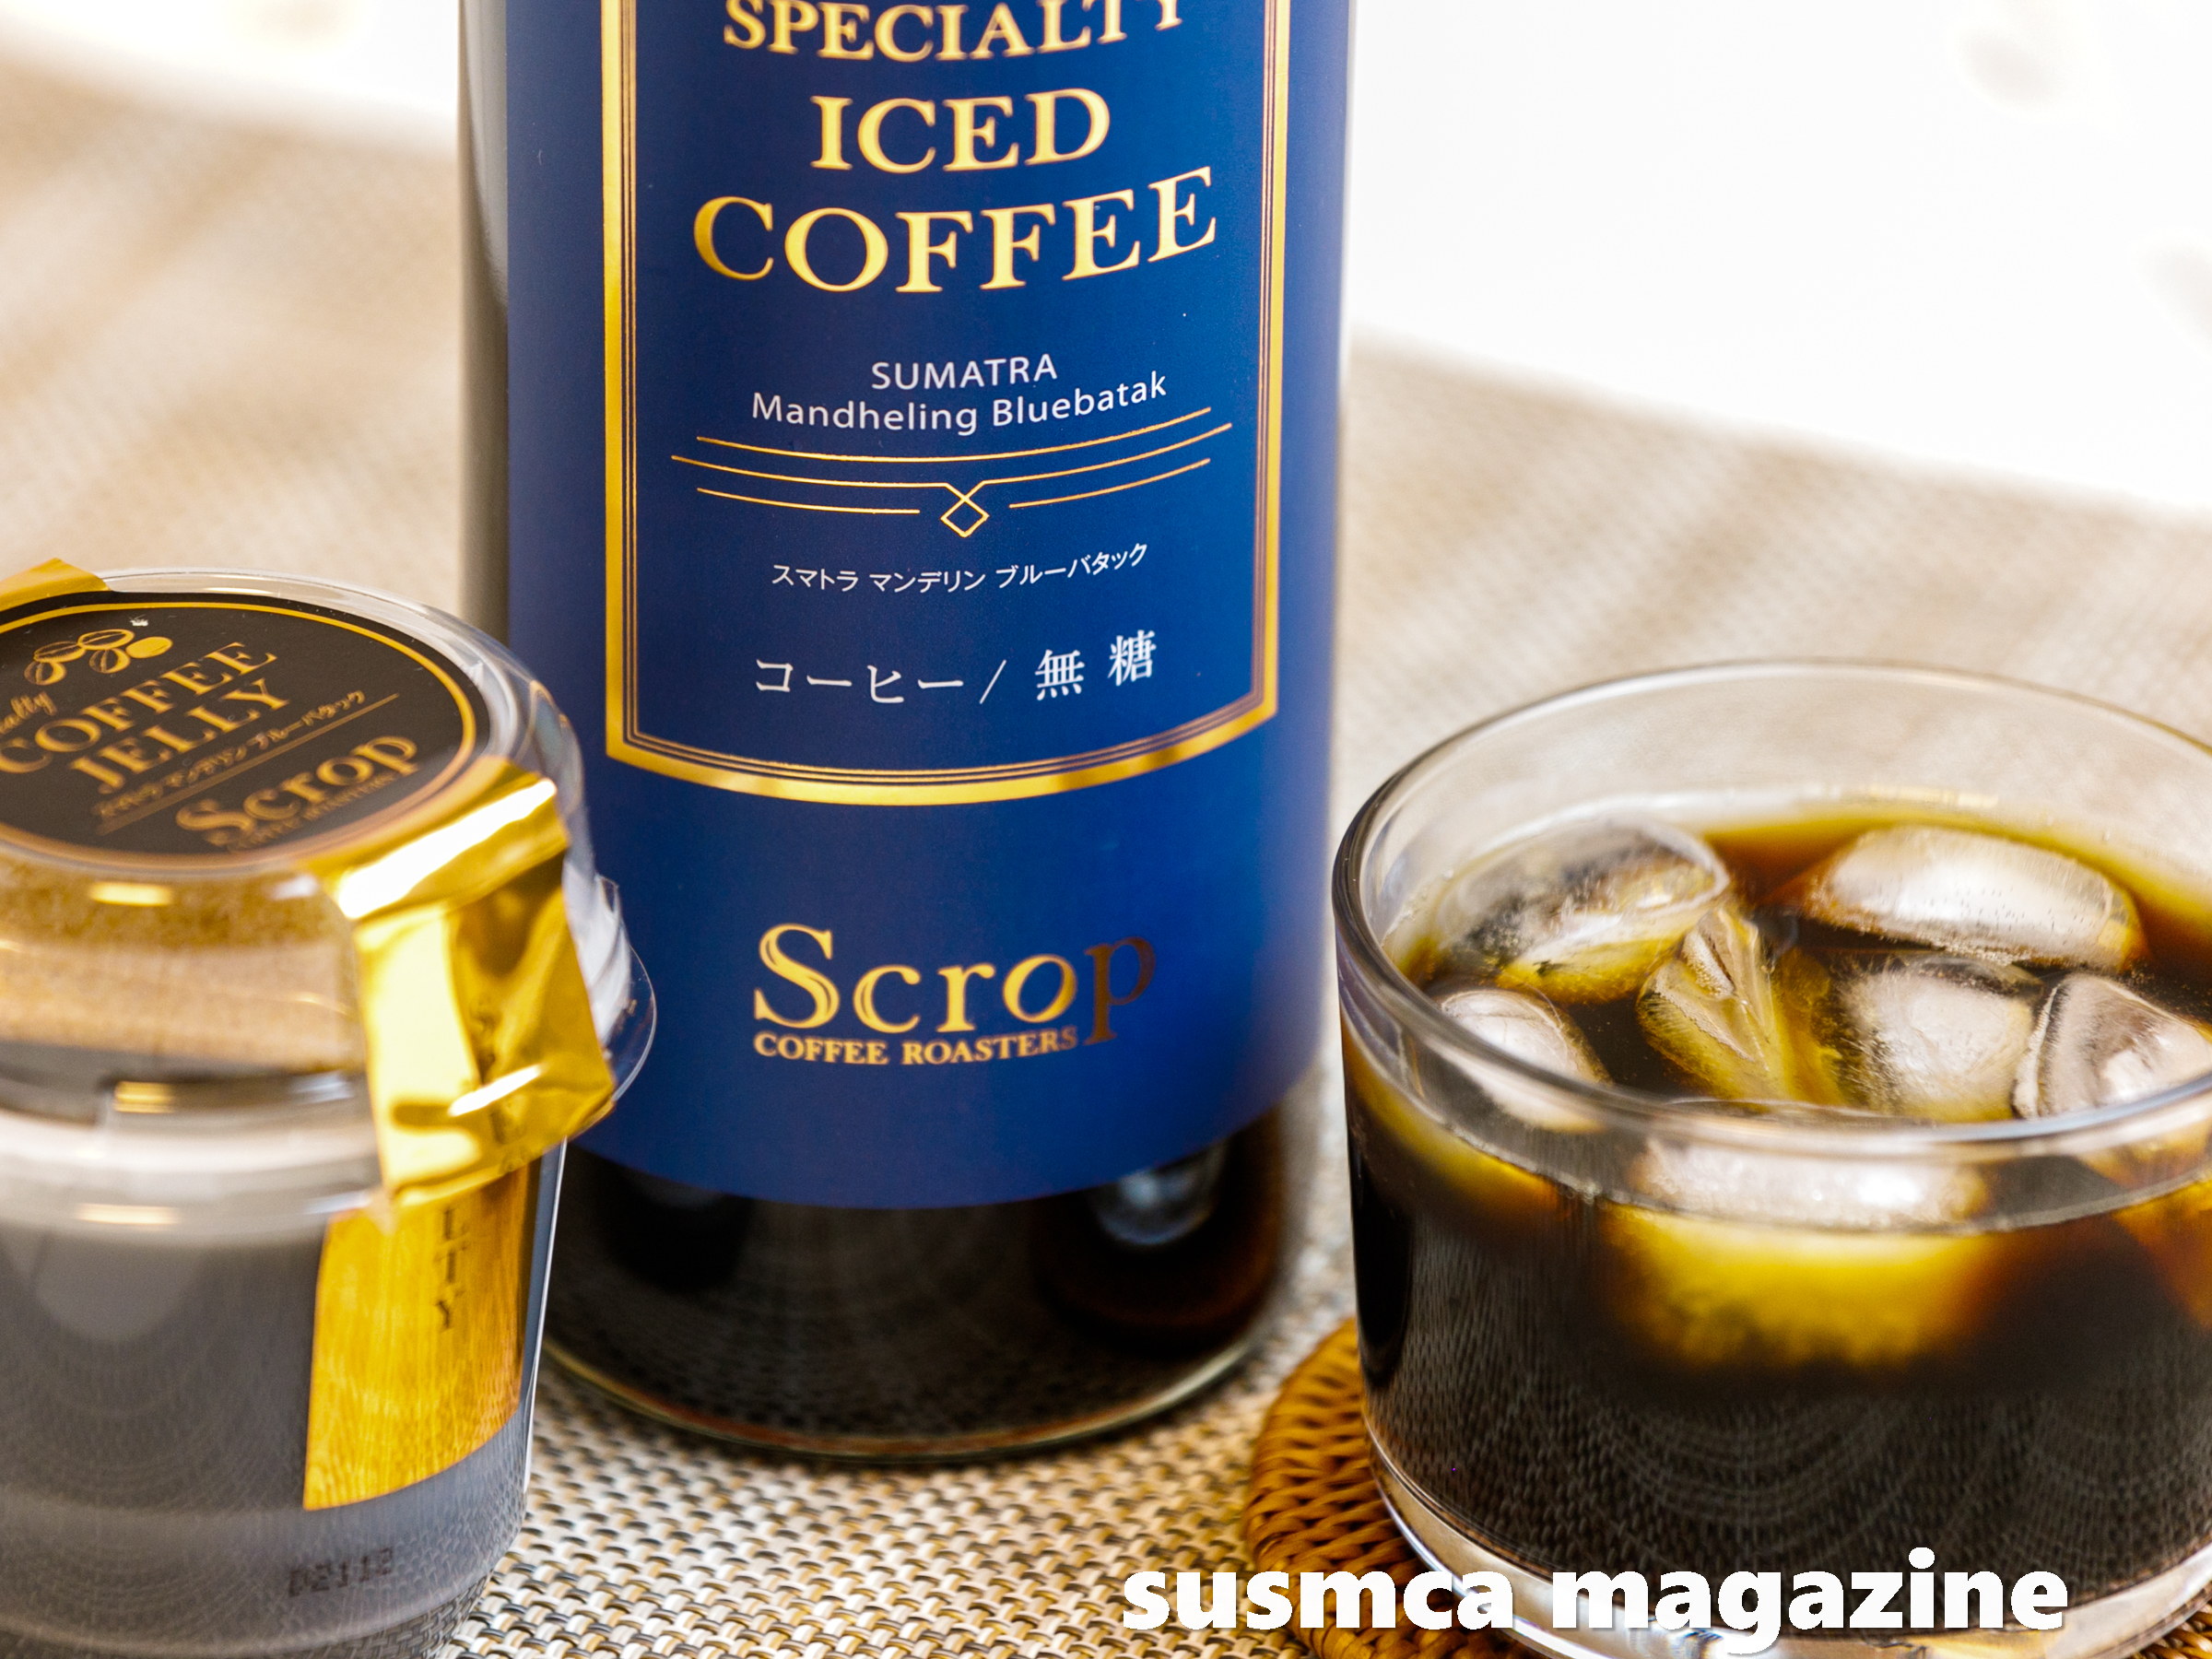 Scrop ギフトセットを試飲レビュー《Scrop COFFEE ROASTERSのお中元ギフトセットは8/31まで》